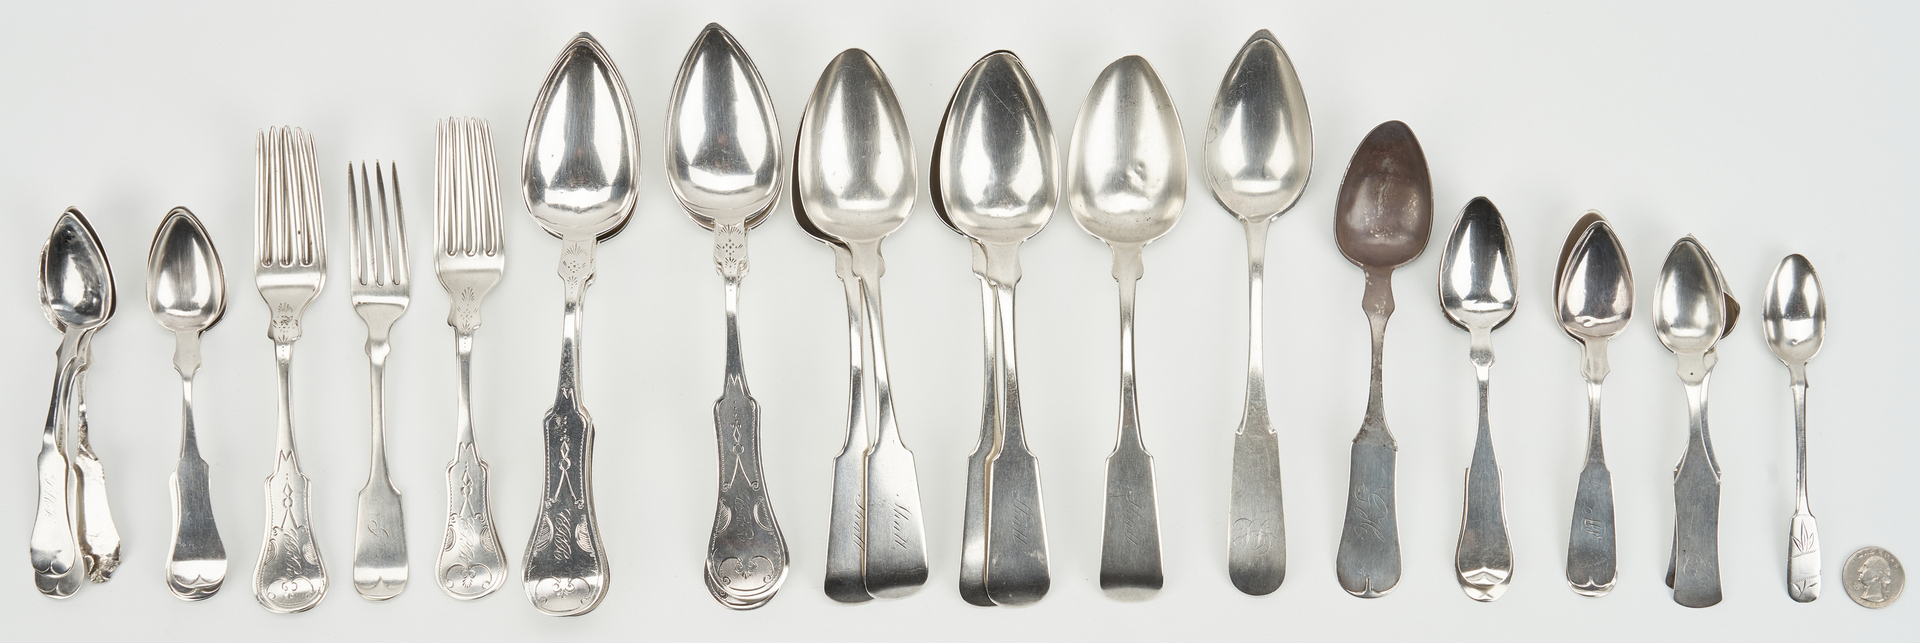 Lot 64: 35 pcs flatware, most coin silver inc. KY makers